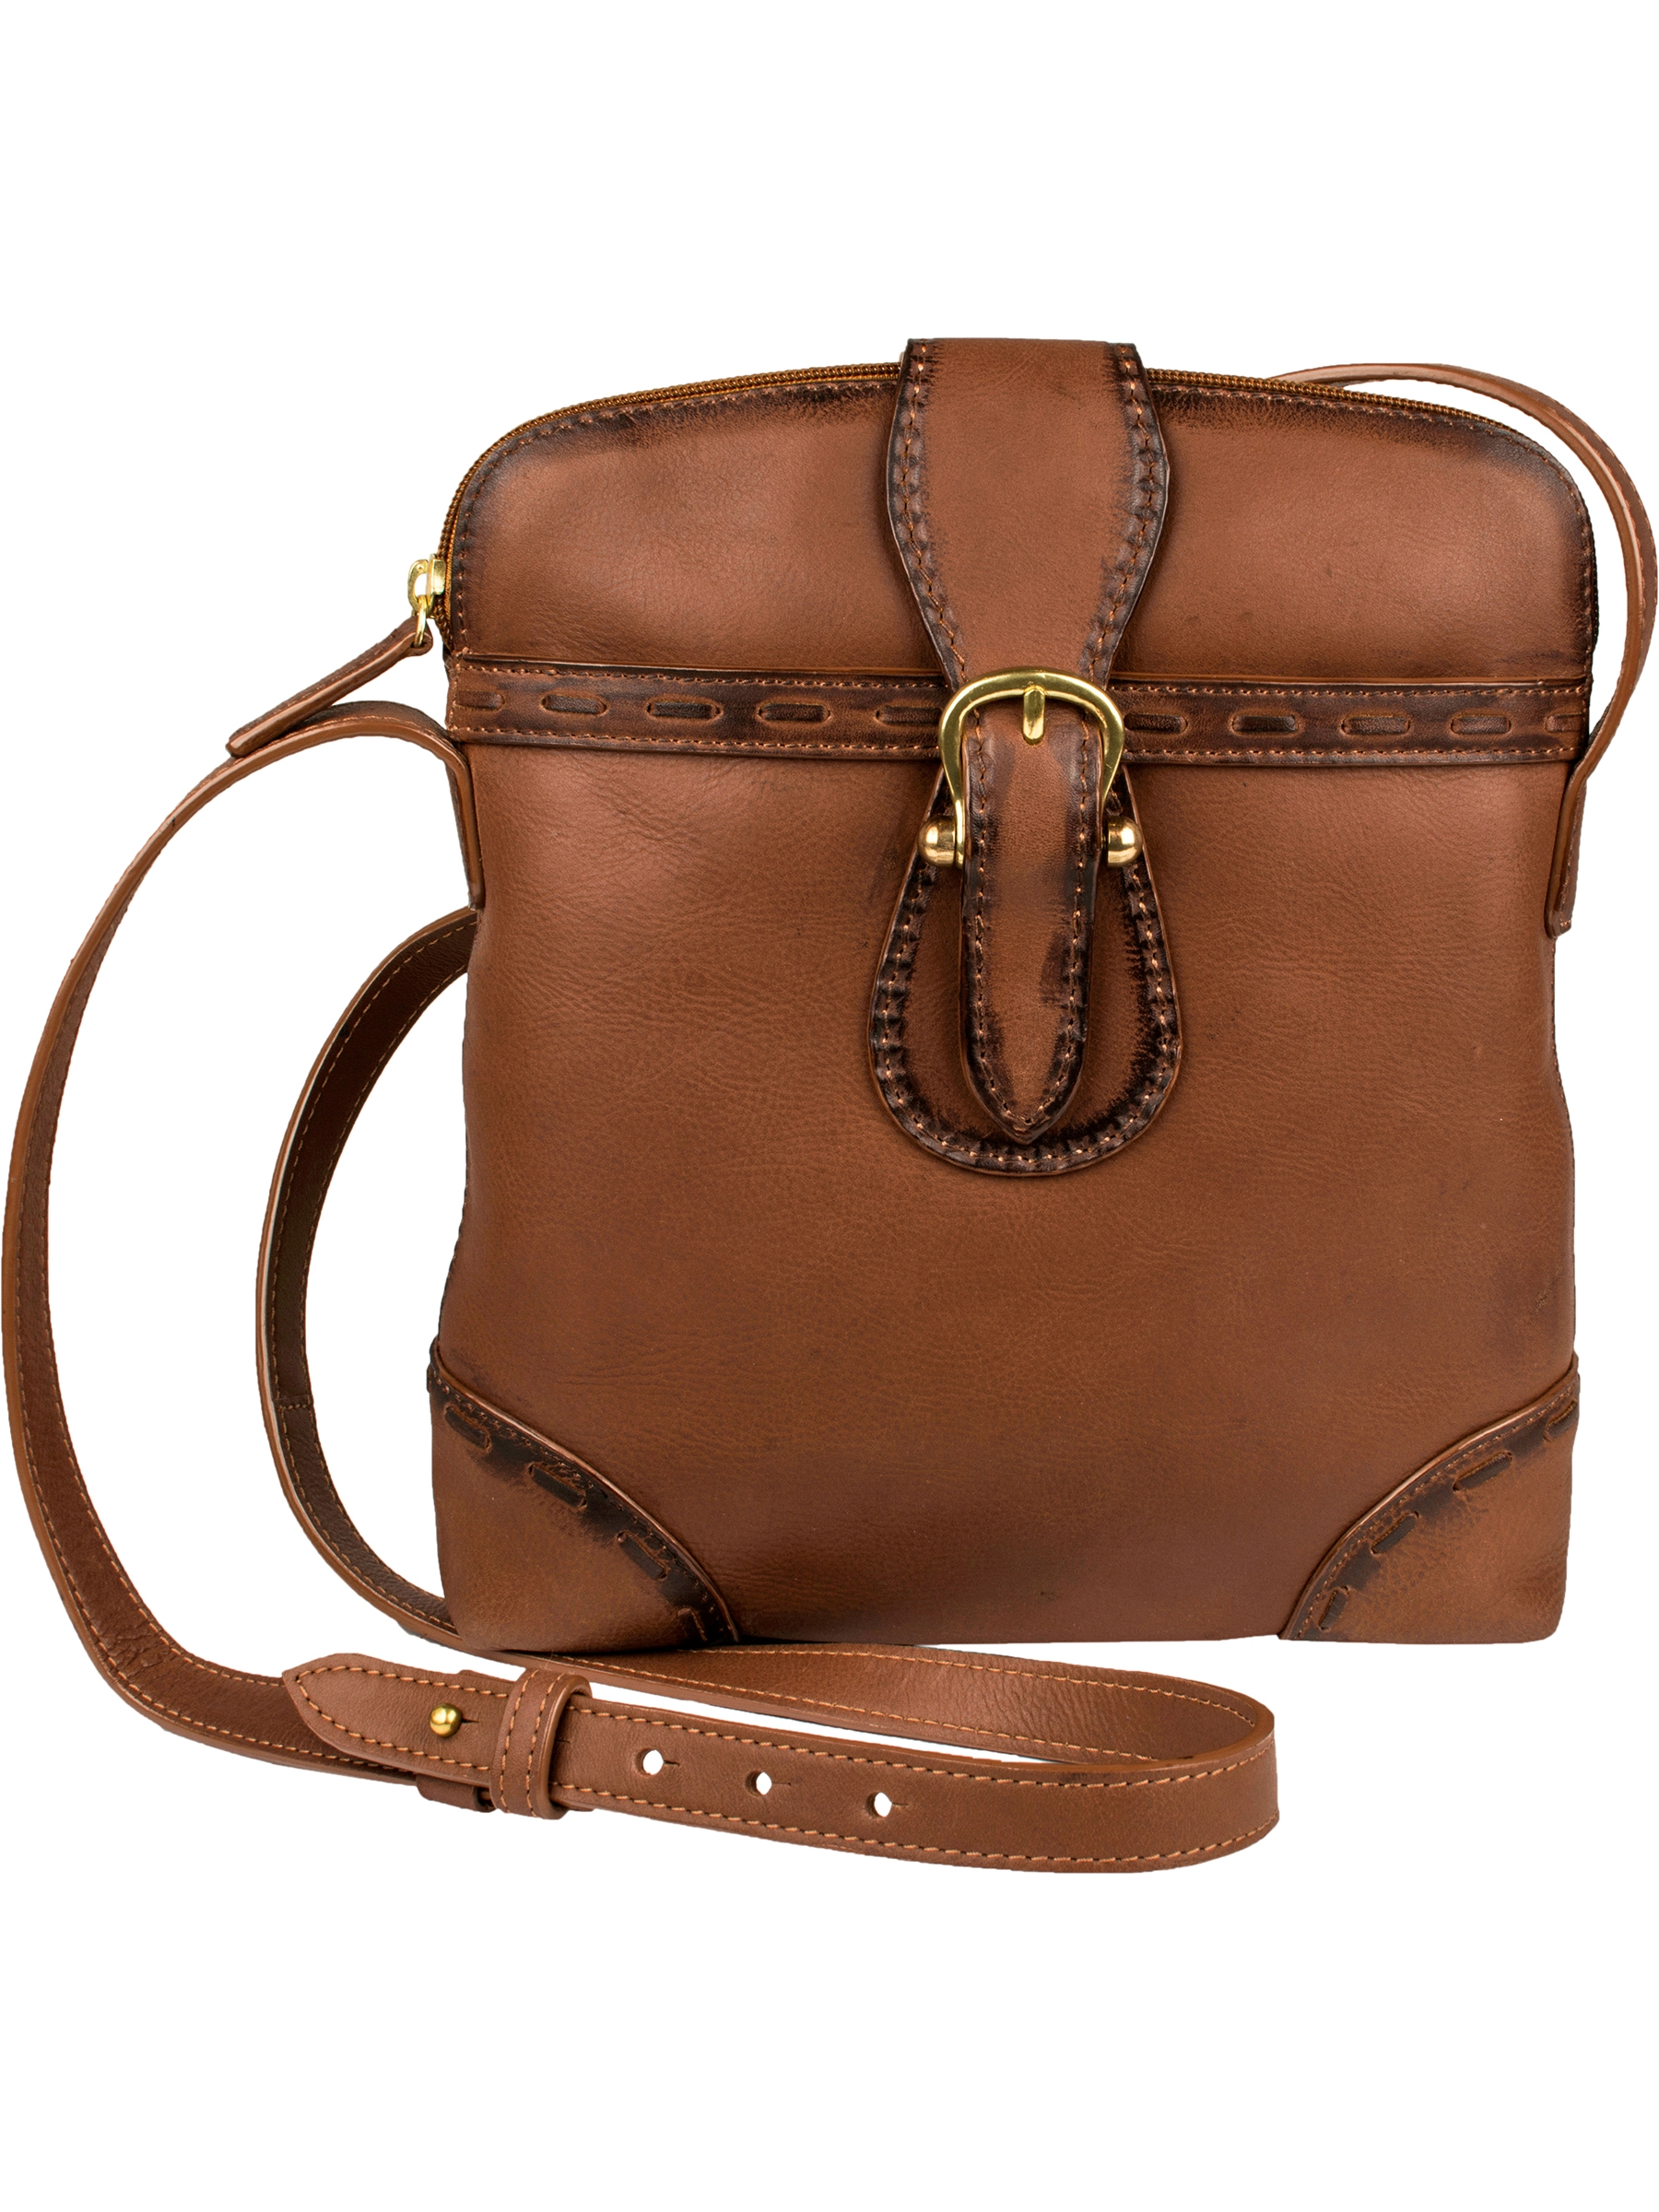 Pebble Calf Leather Cross Body Shoulder bag Handbag Purse